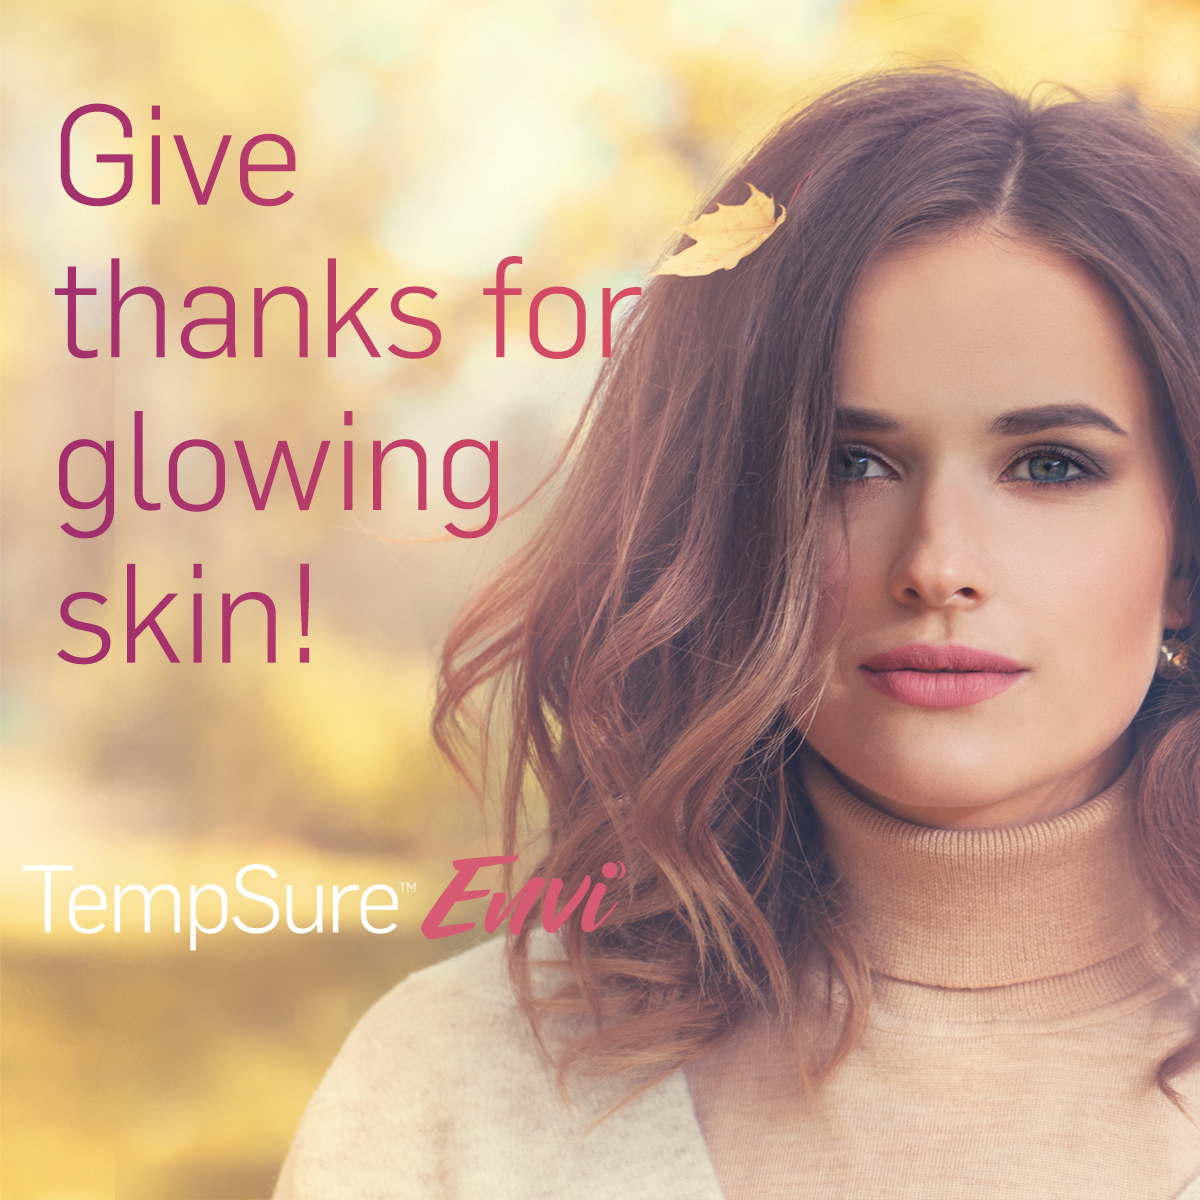 TempSure Envi by Dr.Alex Kim